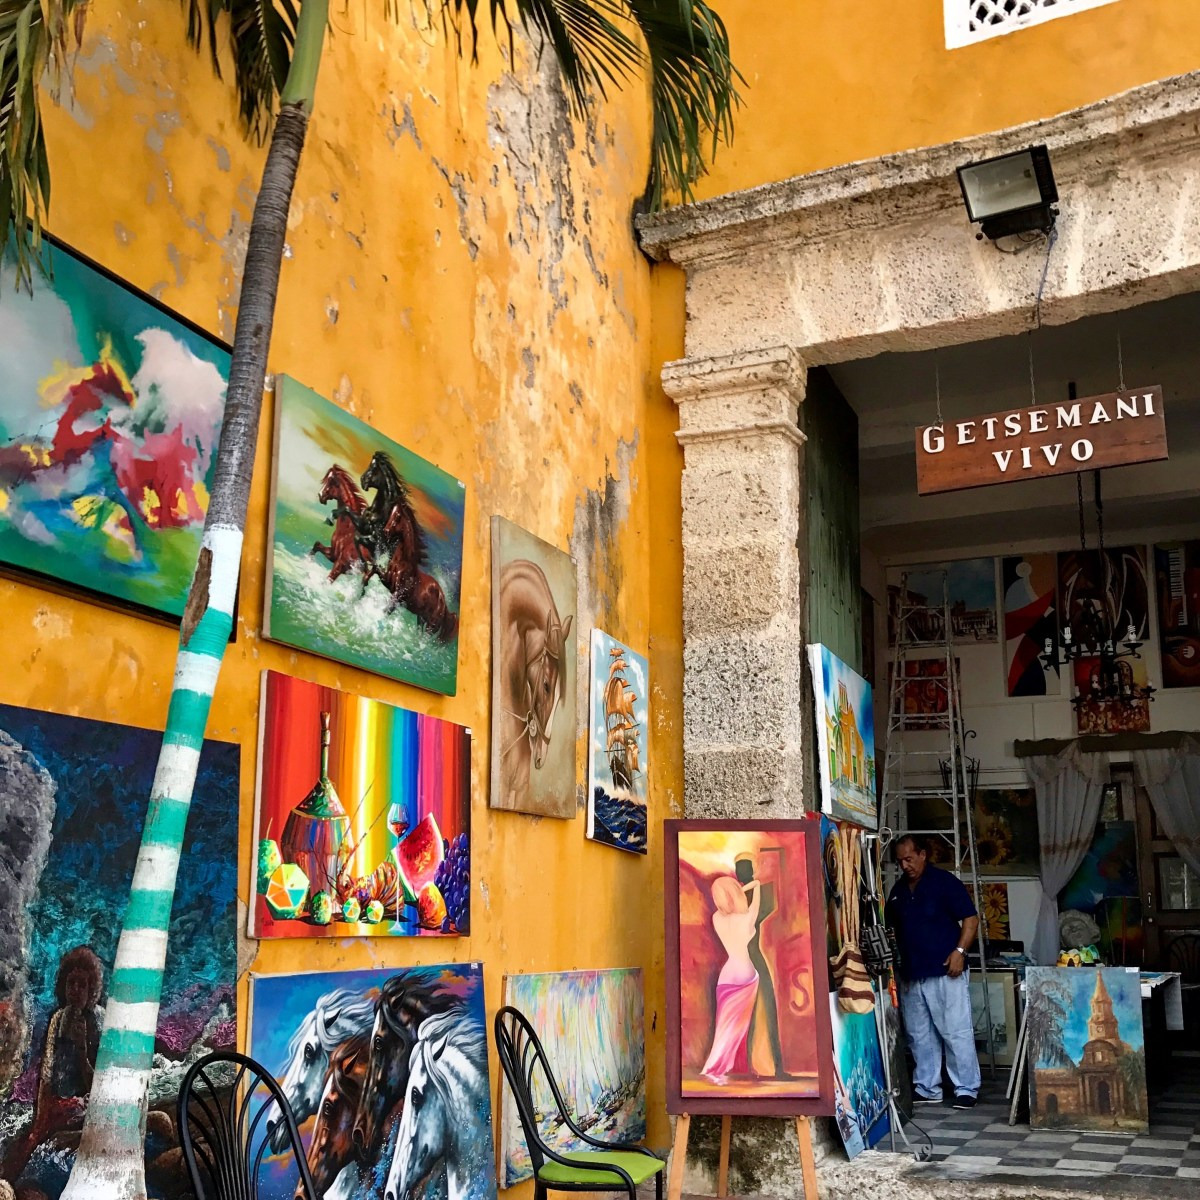 Ultimate Guide to Getsemani the Authentic Neighborhood in Cartagena